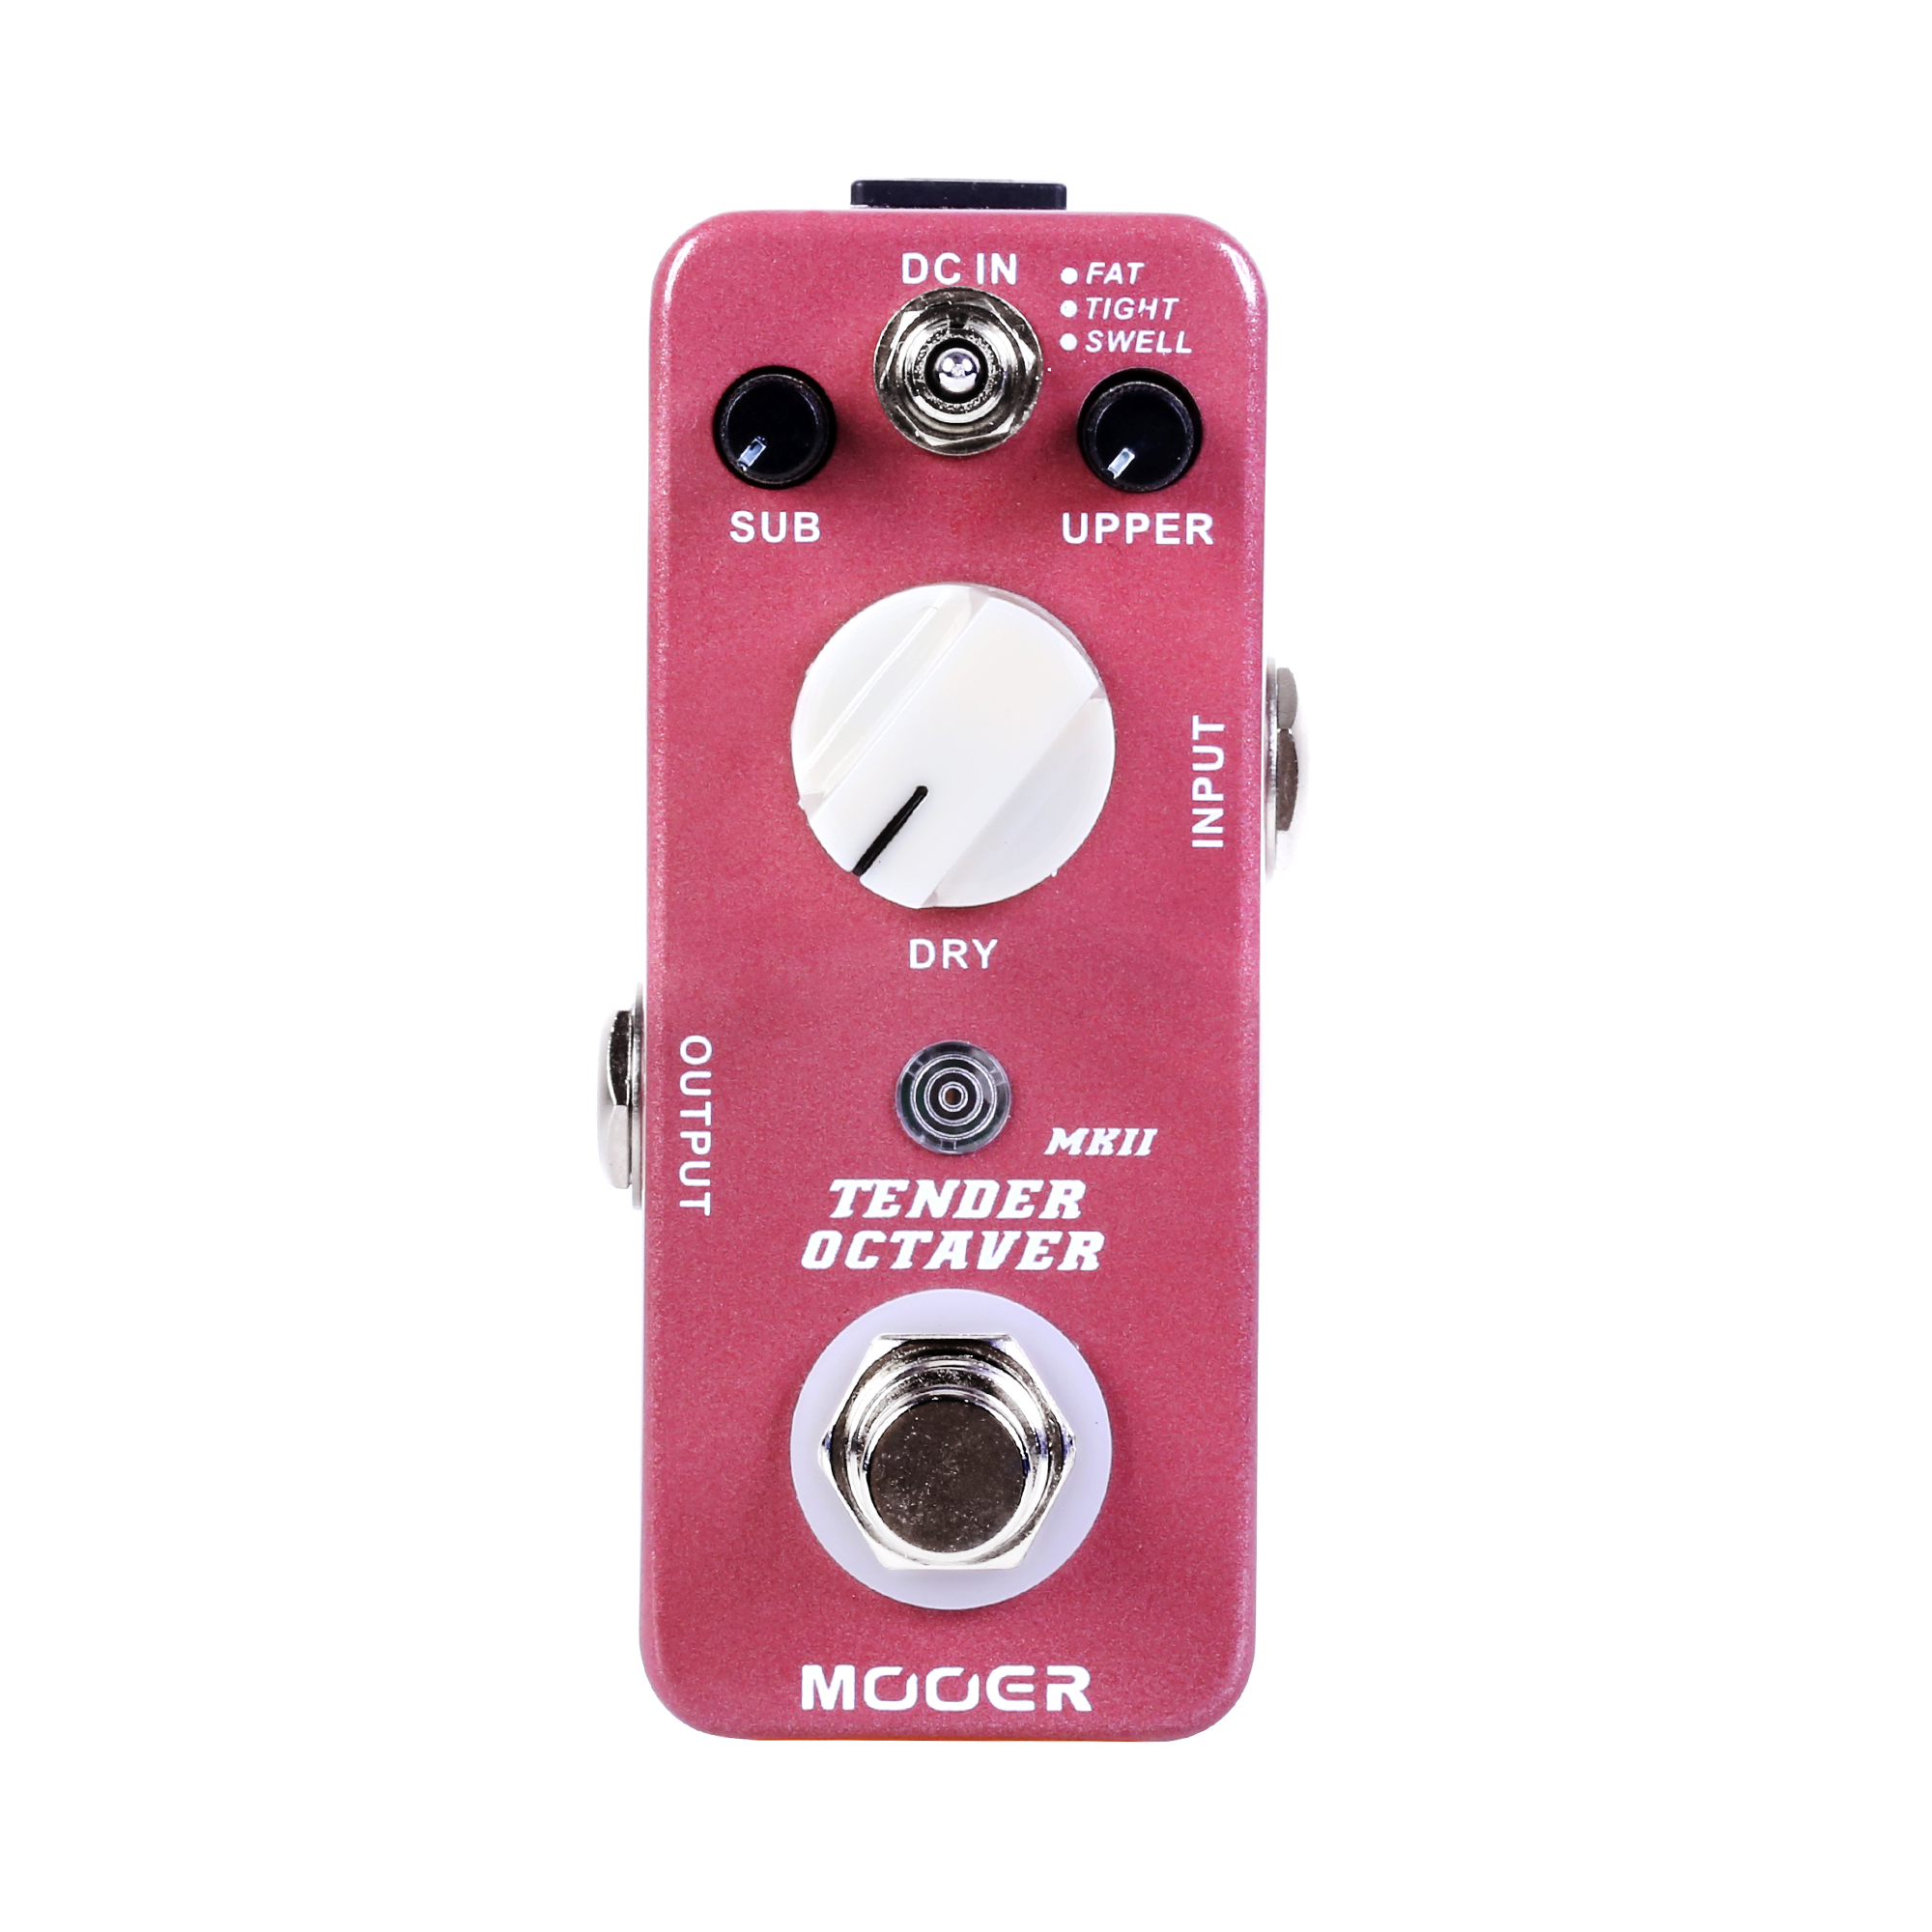 Mooer Tender Octaver MKII Precise Octave Guitar Effect Pedal 3 Tones Switch SUB UPPER DRY Controls True Bypass mooer ensemble queen bass chorus effect pedal mini guitar effects true bypass with free connector and footswitch topper